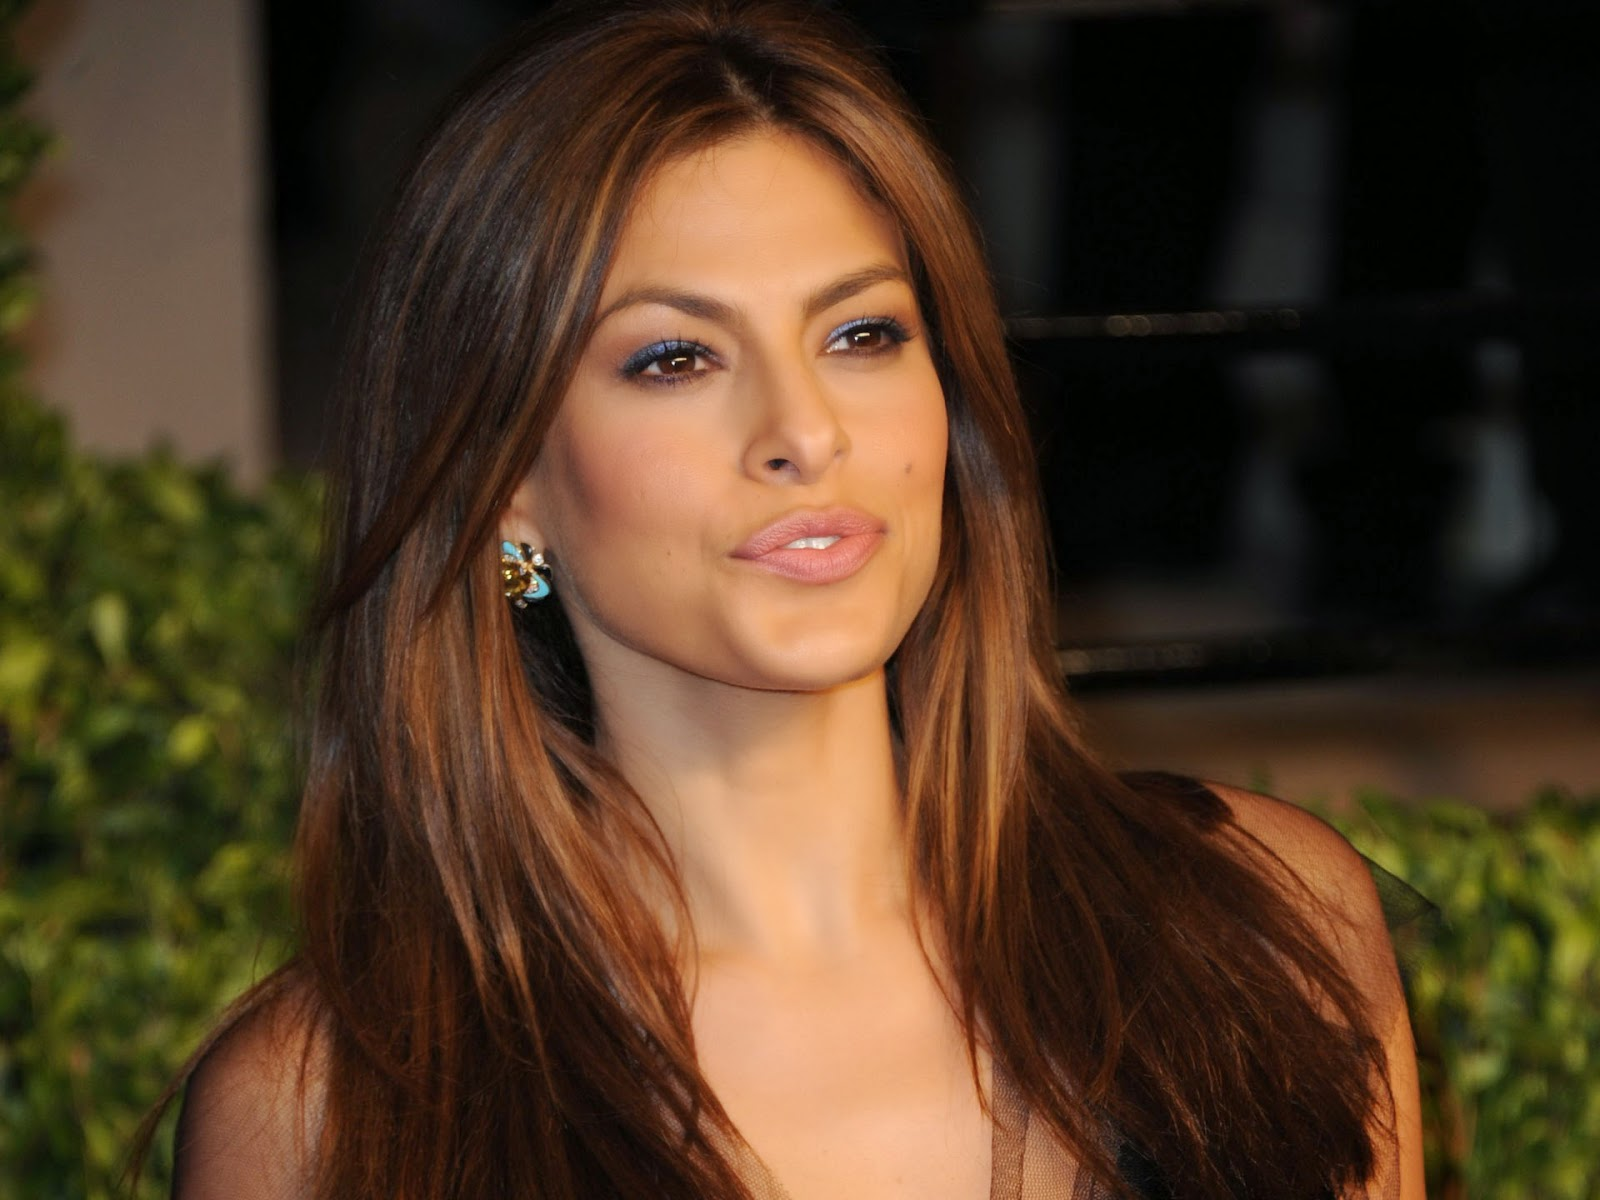 Eva mendes cute wallpaper of hollywood actress